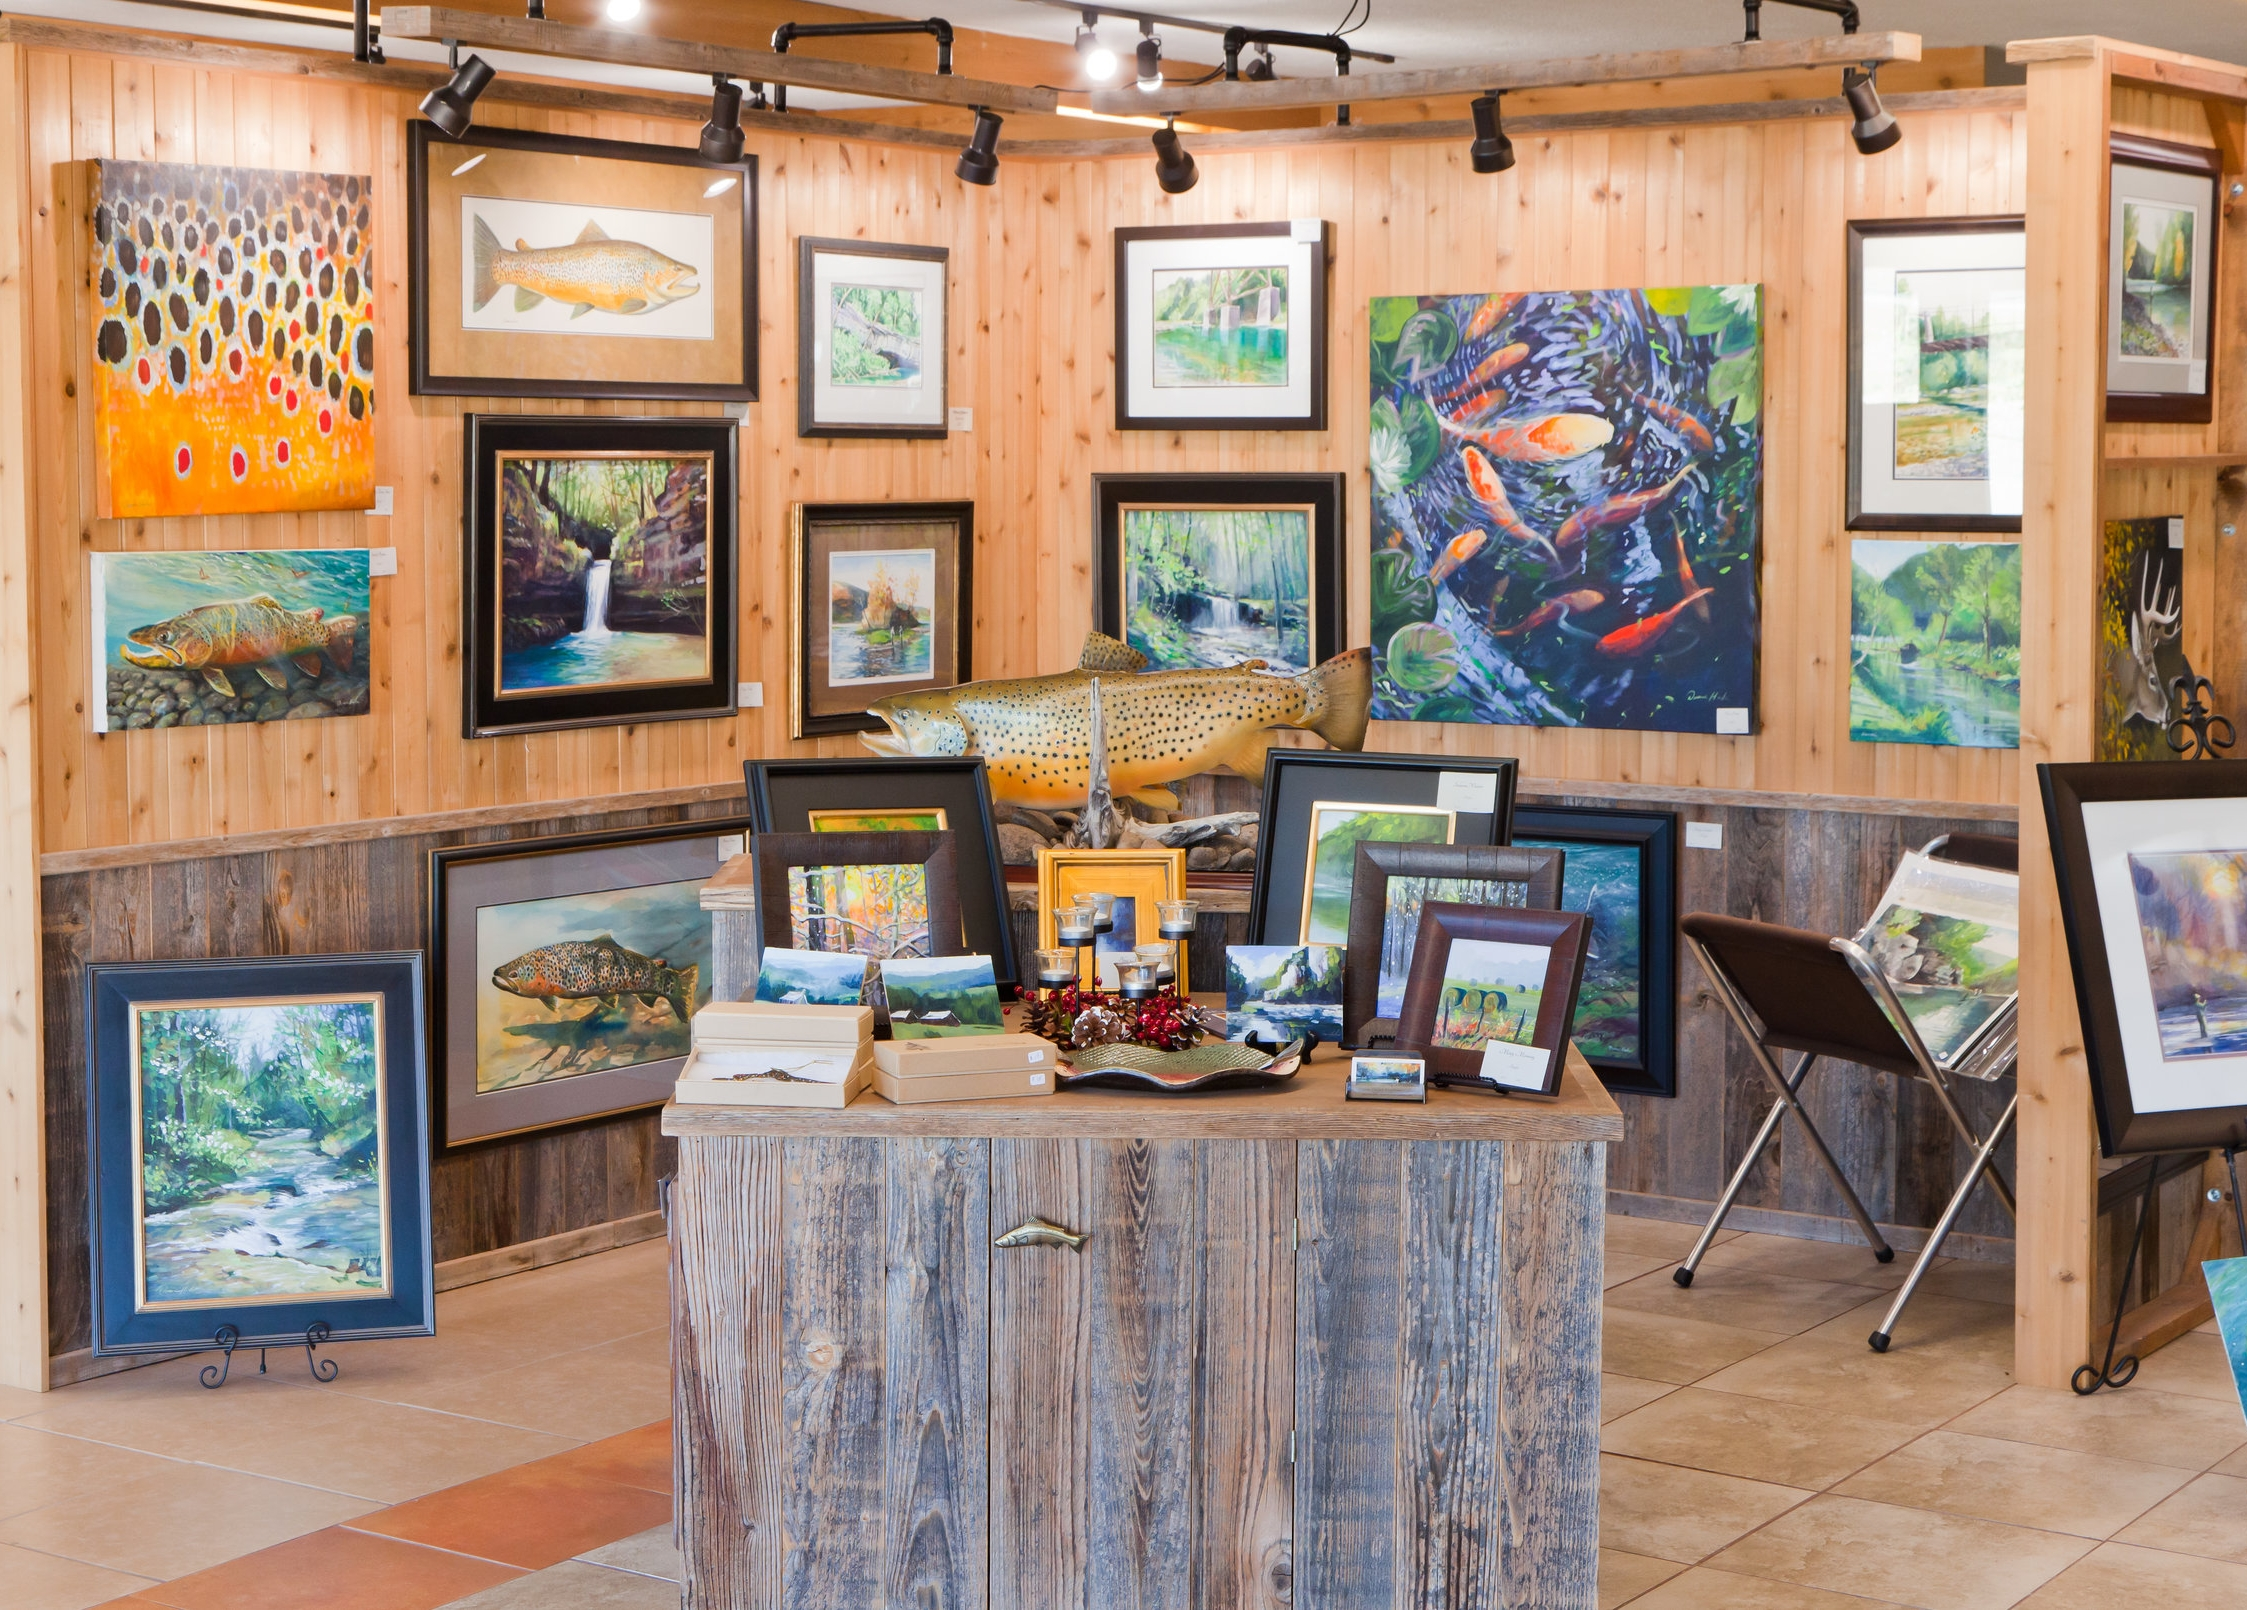 The gallery is filled with outdoor-themed art that ranges from paintings to carvings to chairs. Rivertown Gallery is located at 3512 US-62 in Mountain Home.